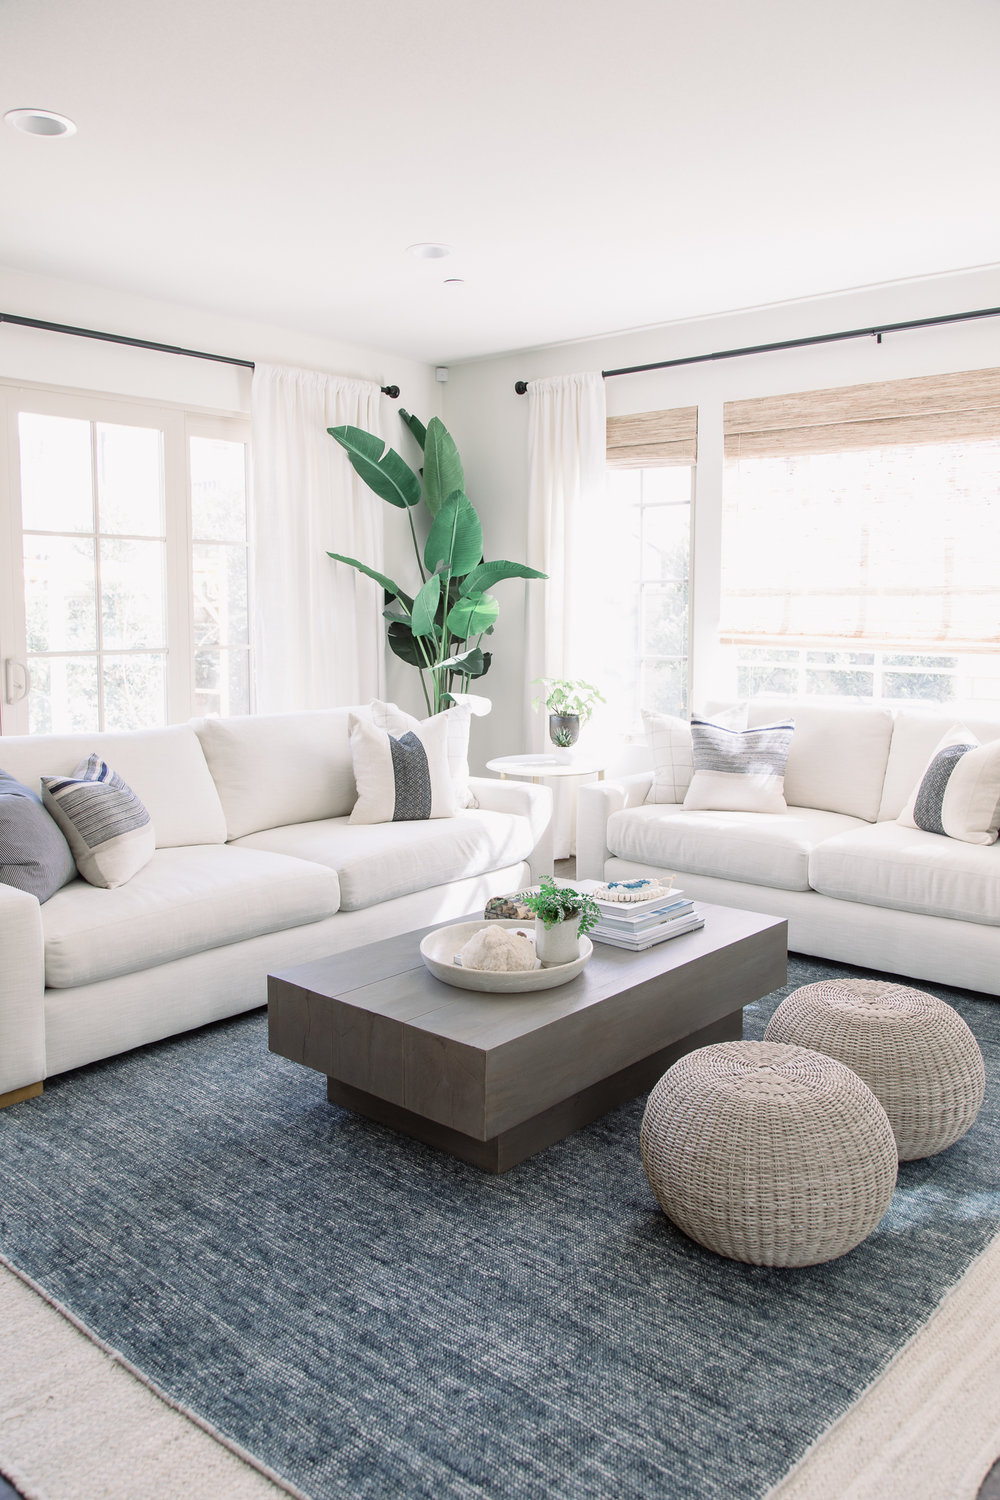 Nature is a part of every room in the home, with plants embellishing each design.